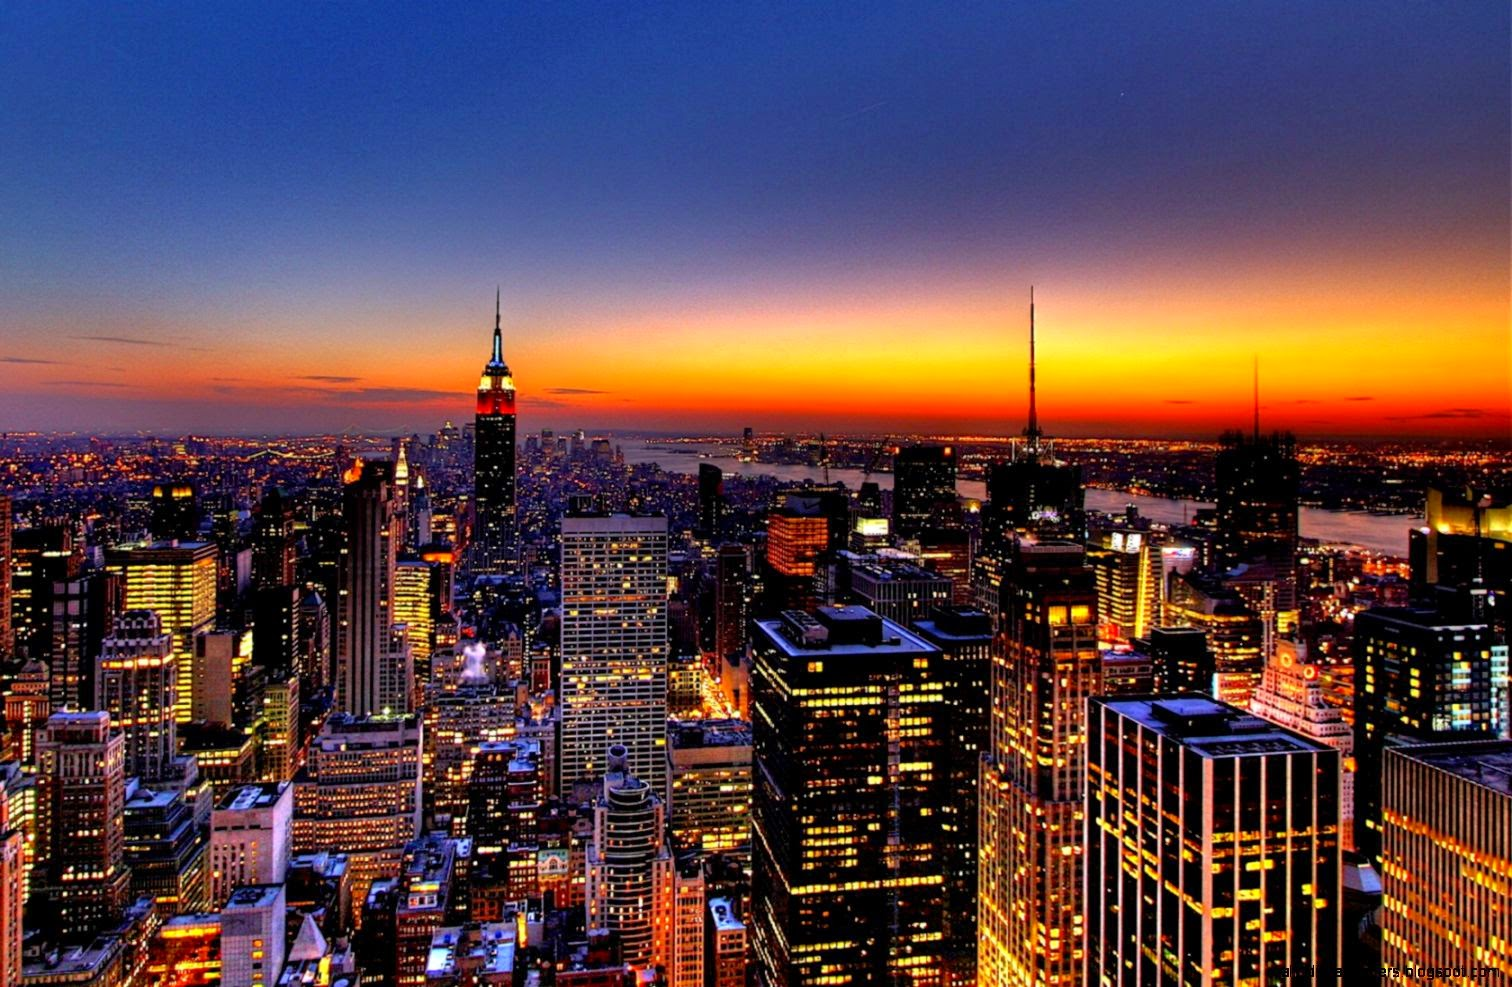 City wallpaper desktop all hd wallpapers - New york skyline computer wallpaper ...